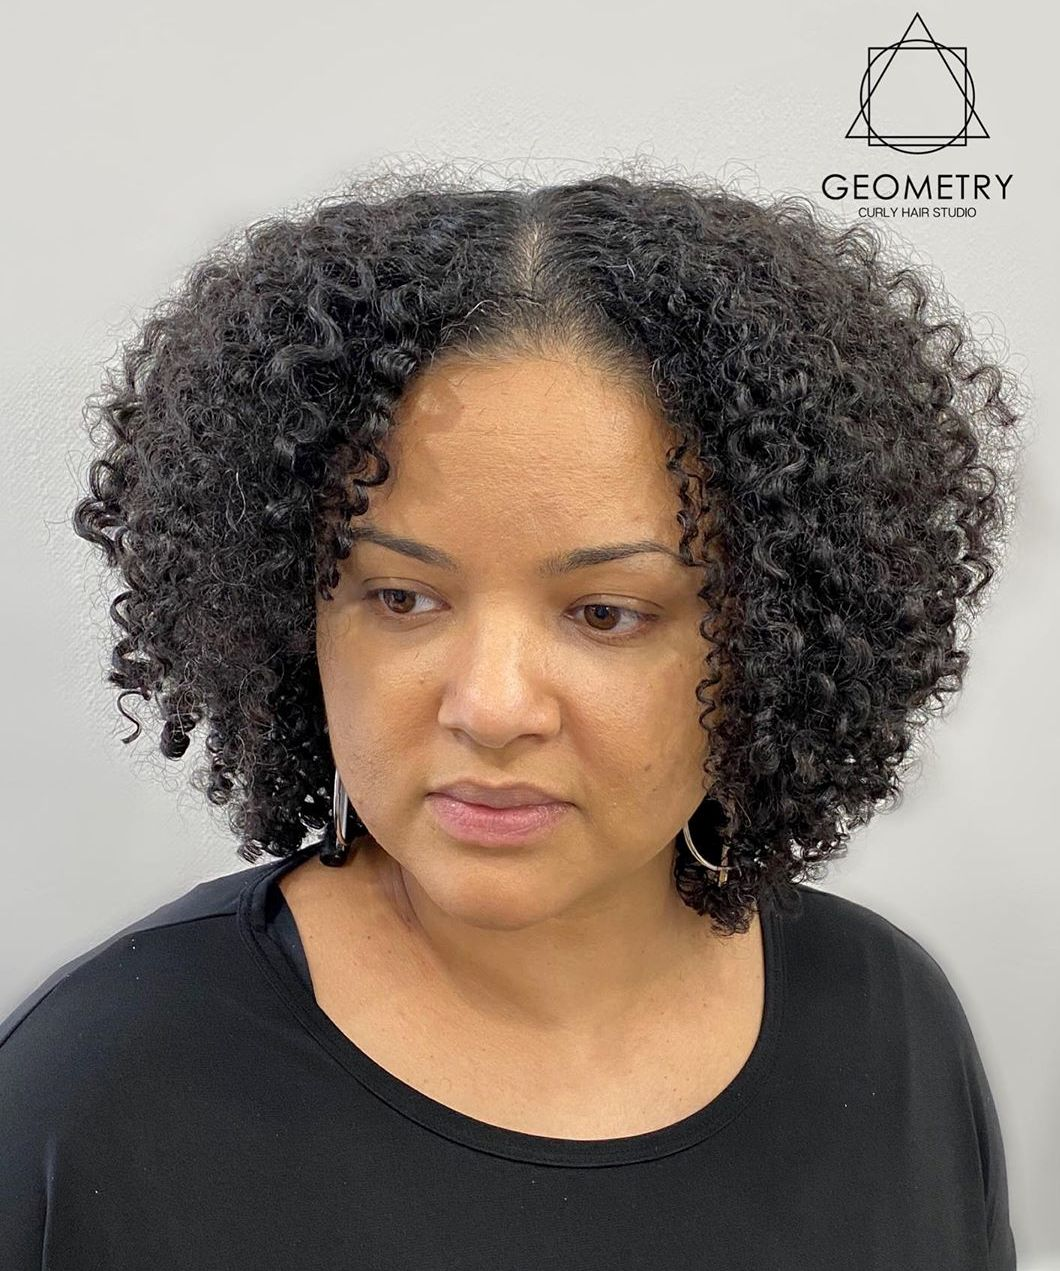 Neck-Length Layered Cut for Natural Hair